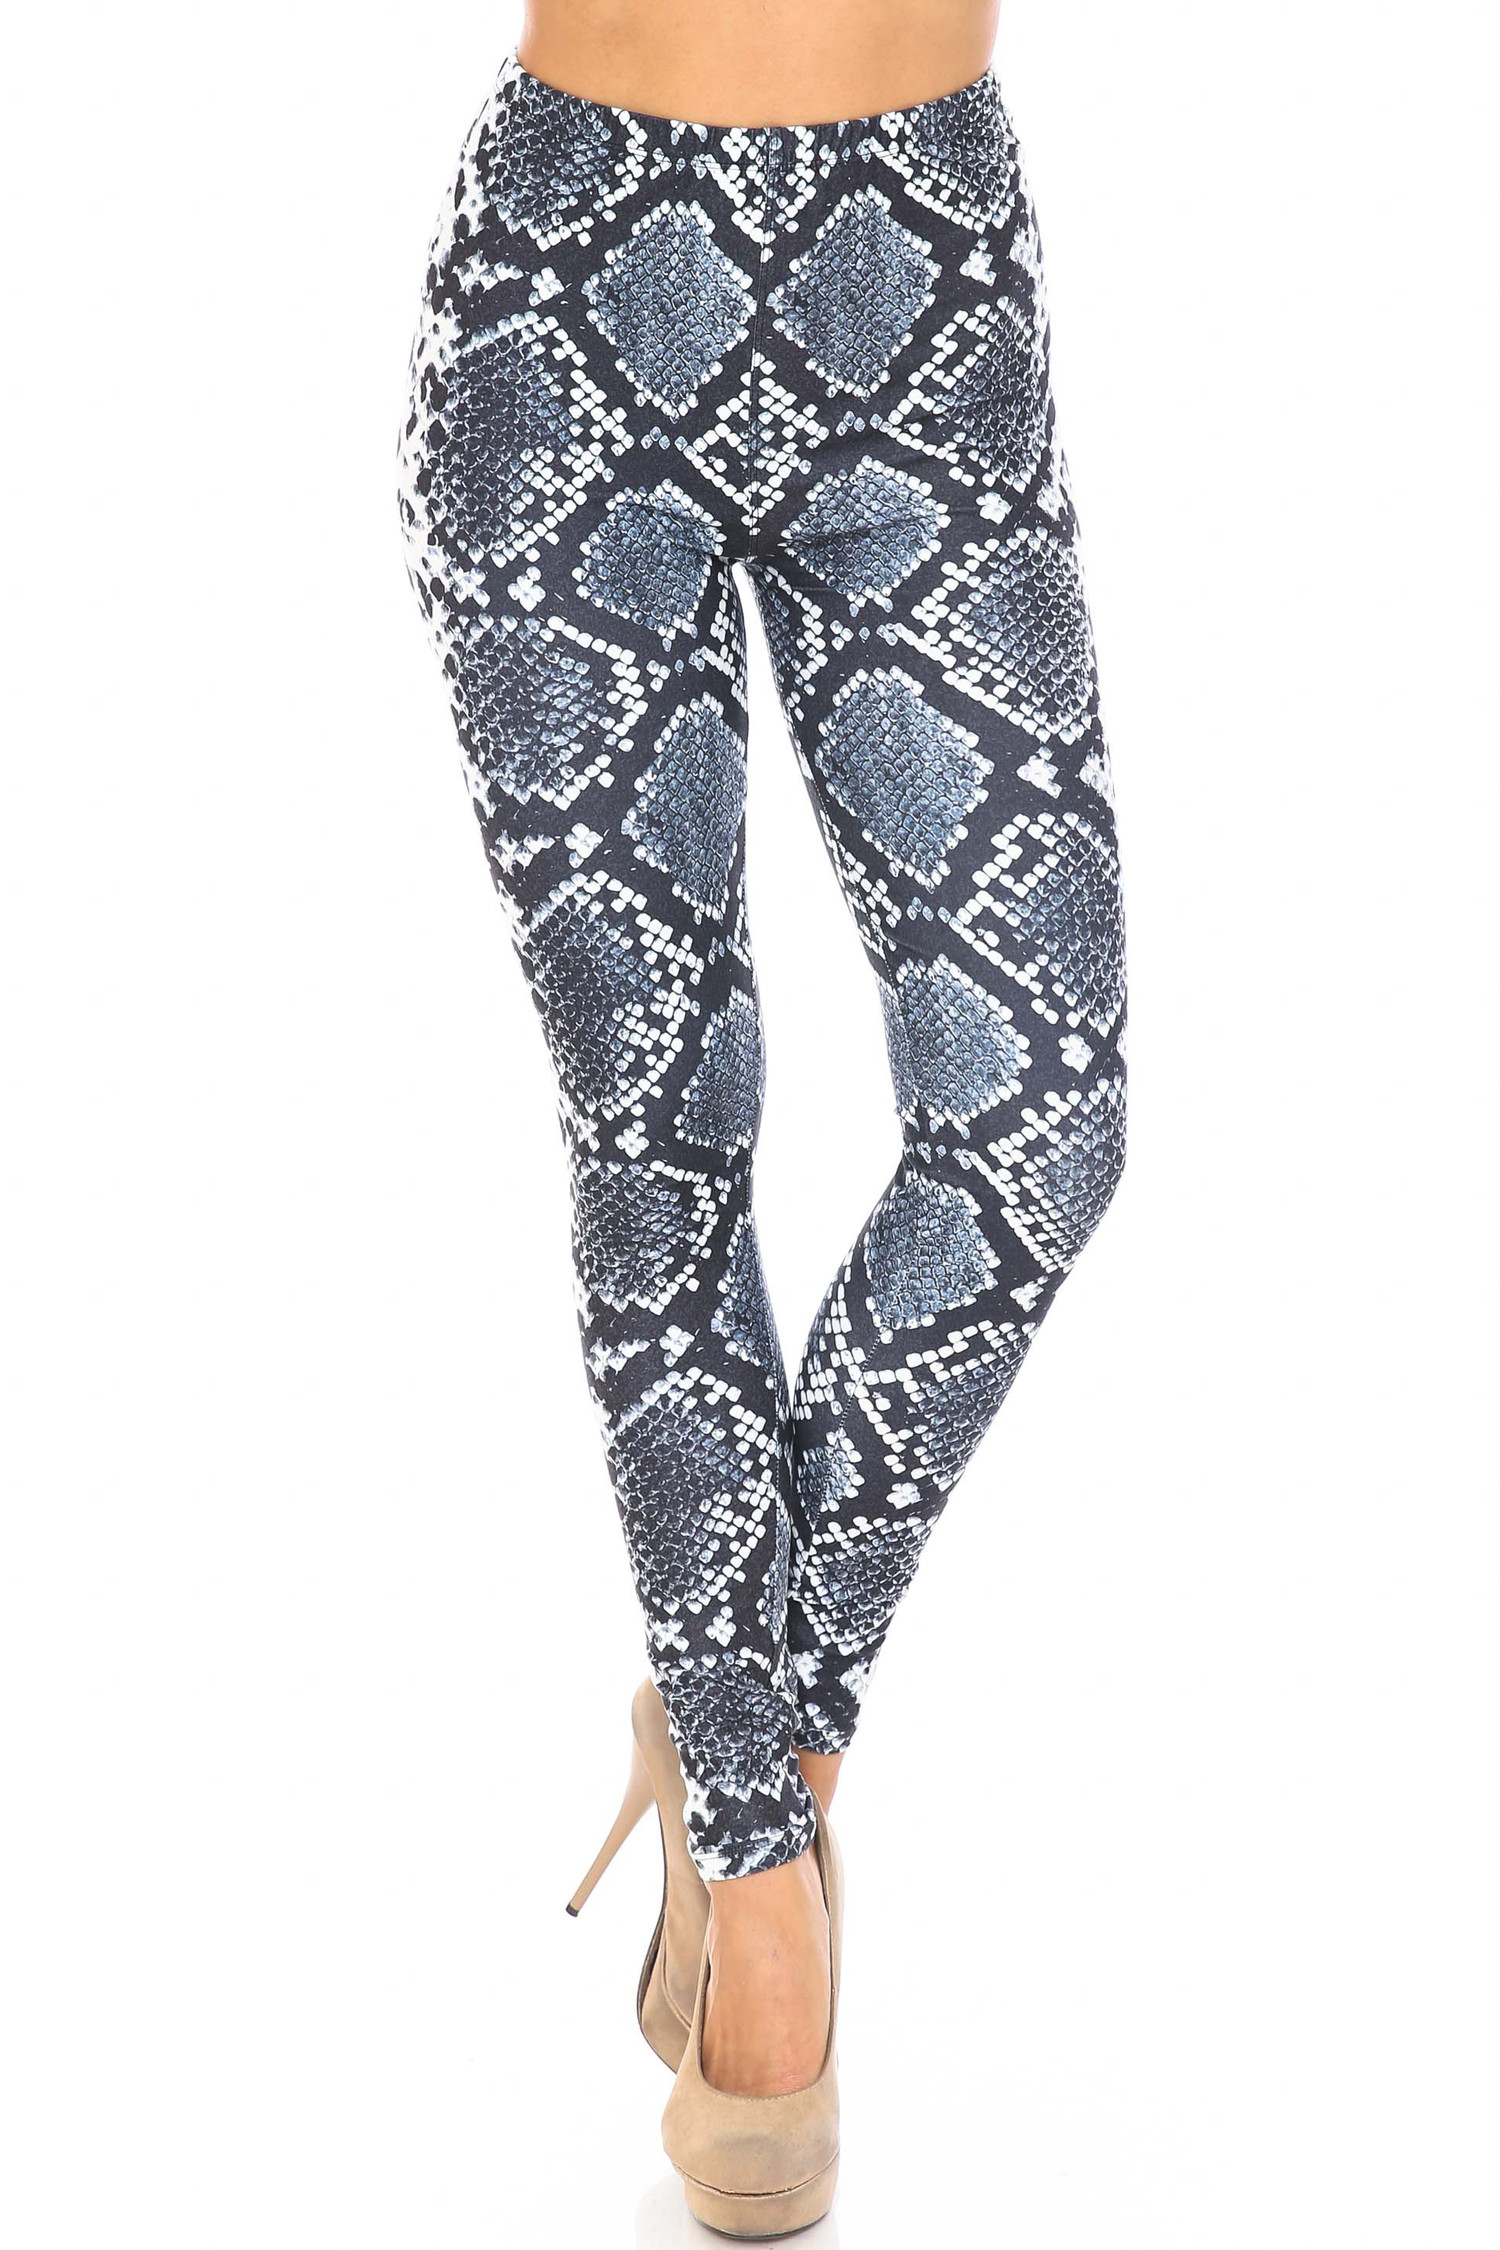 Front side image of Creamy Soft Steel Blue Boa Extra Plus Size Leggings - 3X-5X - USA Fashion™